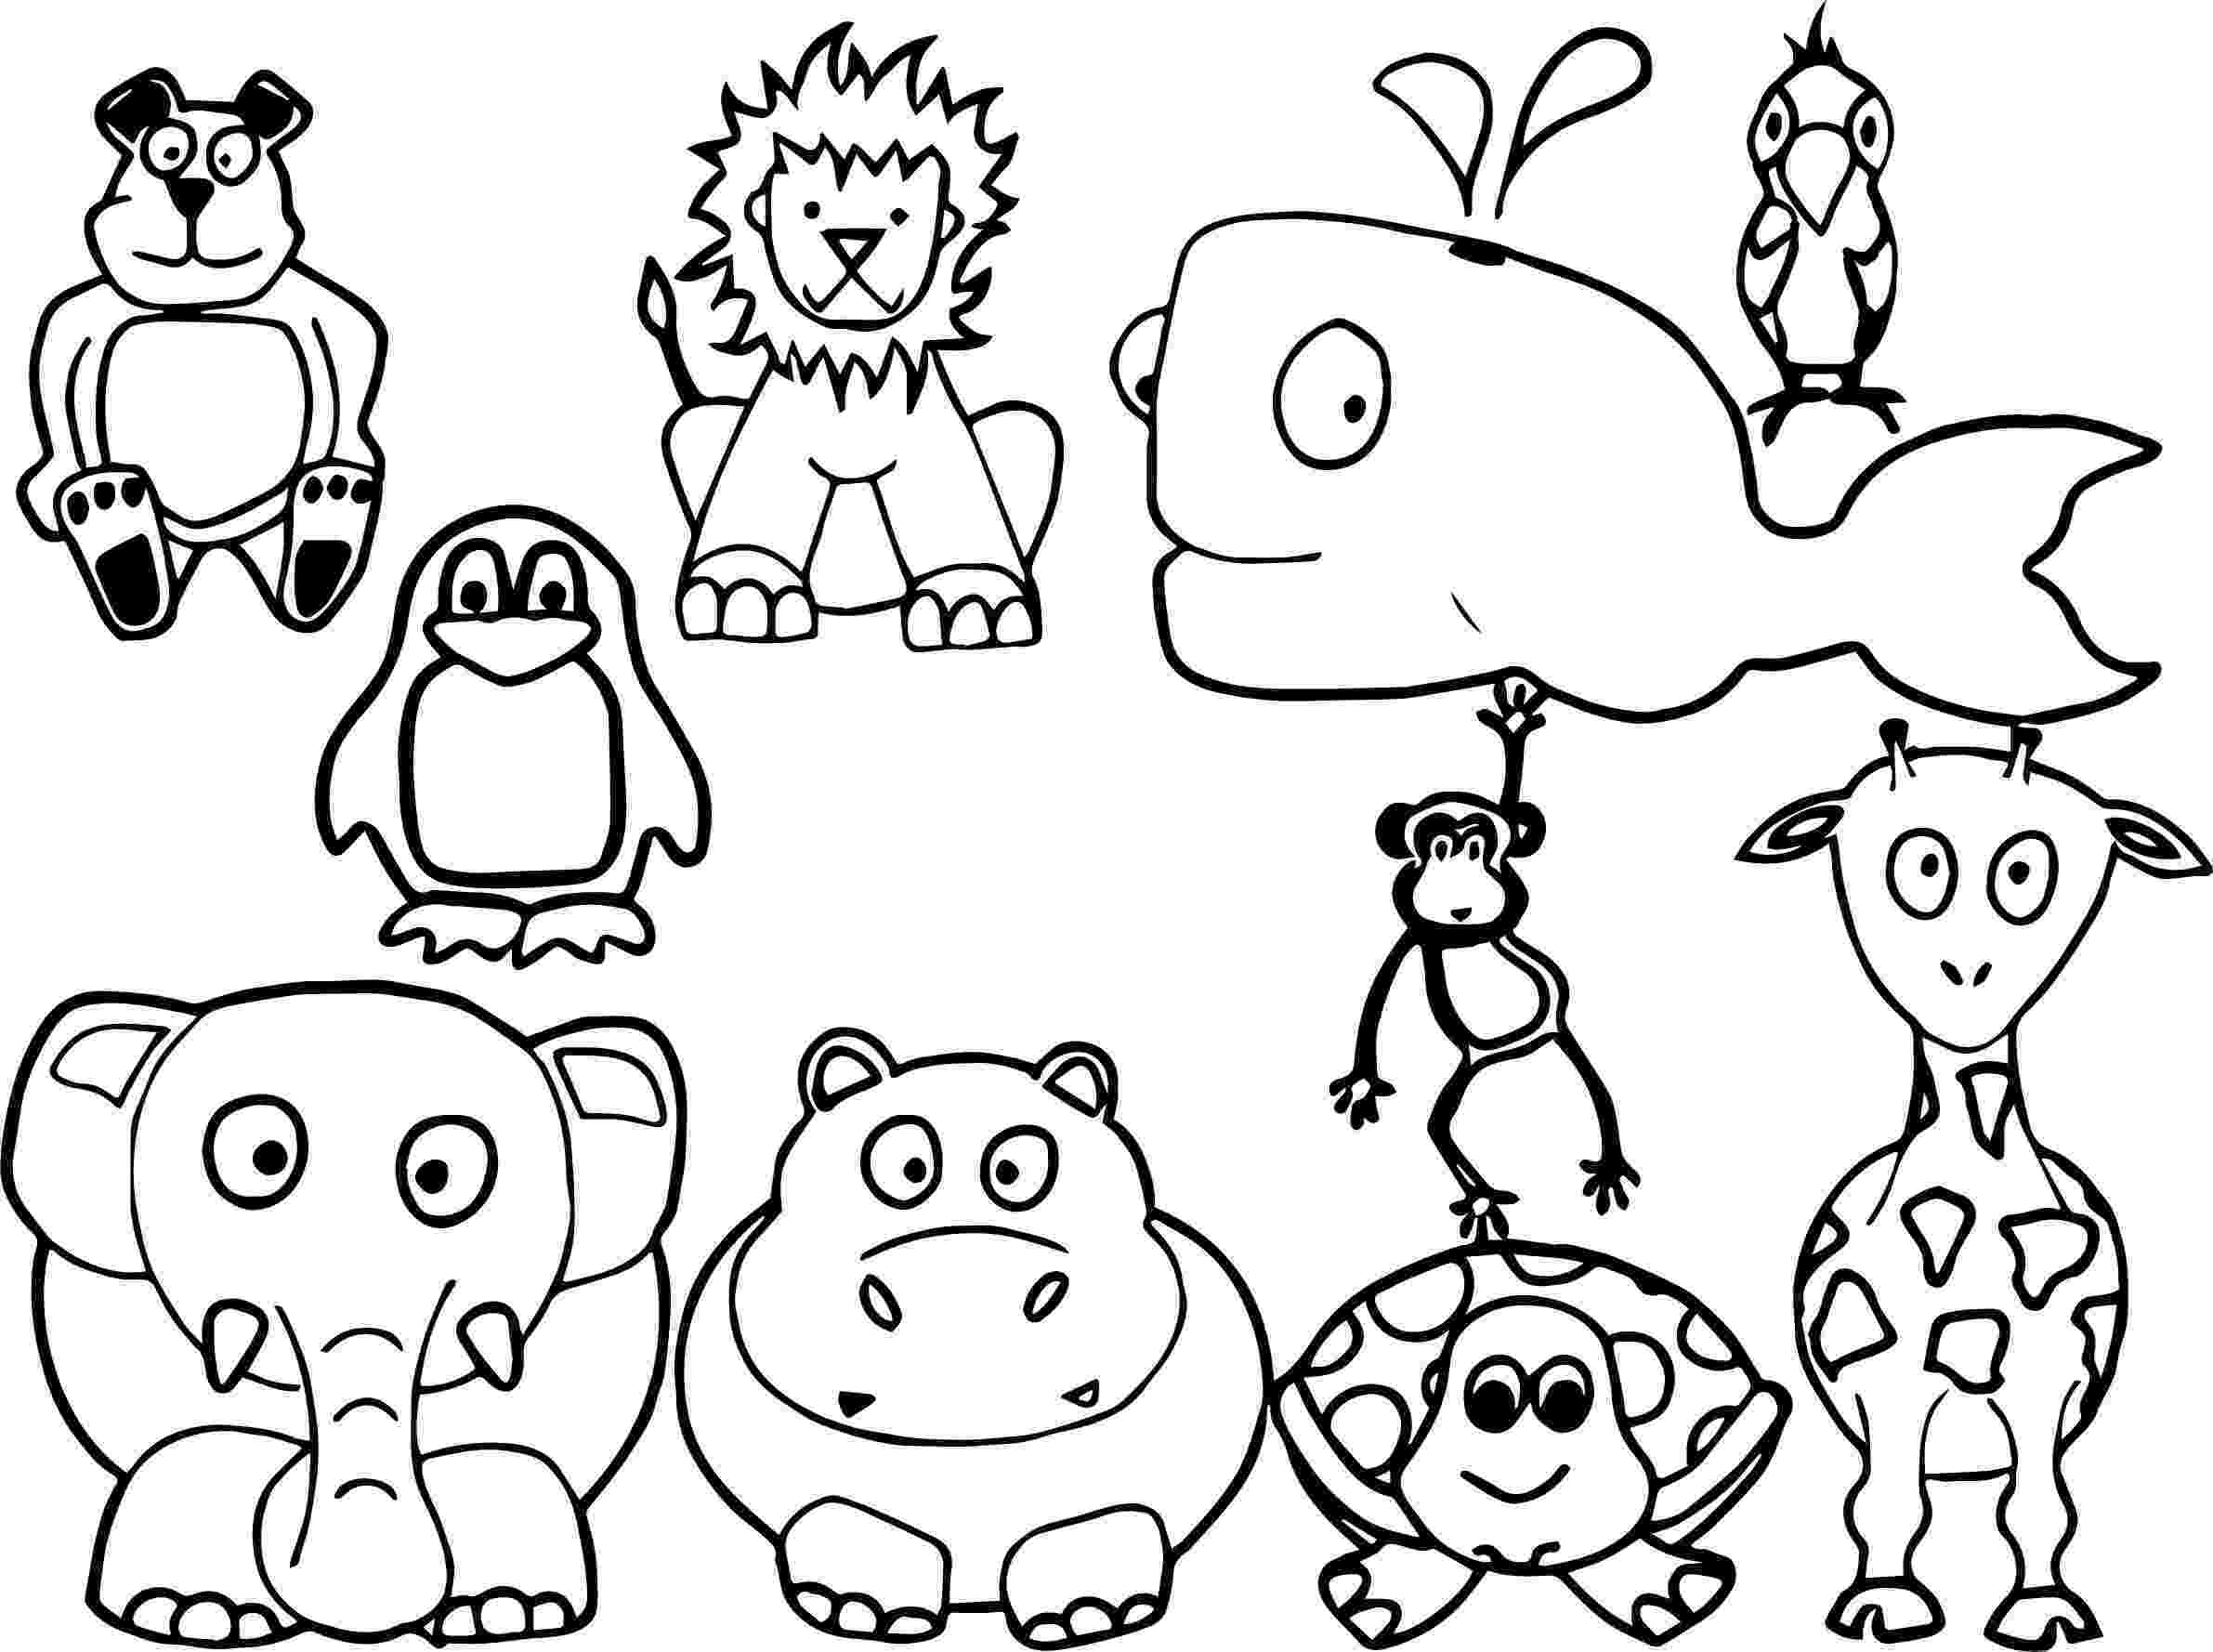 printable coloring pages of animals printable coloring pages for kids coloring pages for kids coloring printable of animals pages